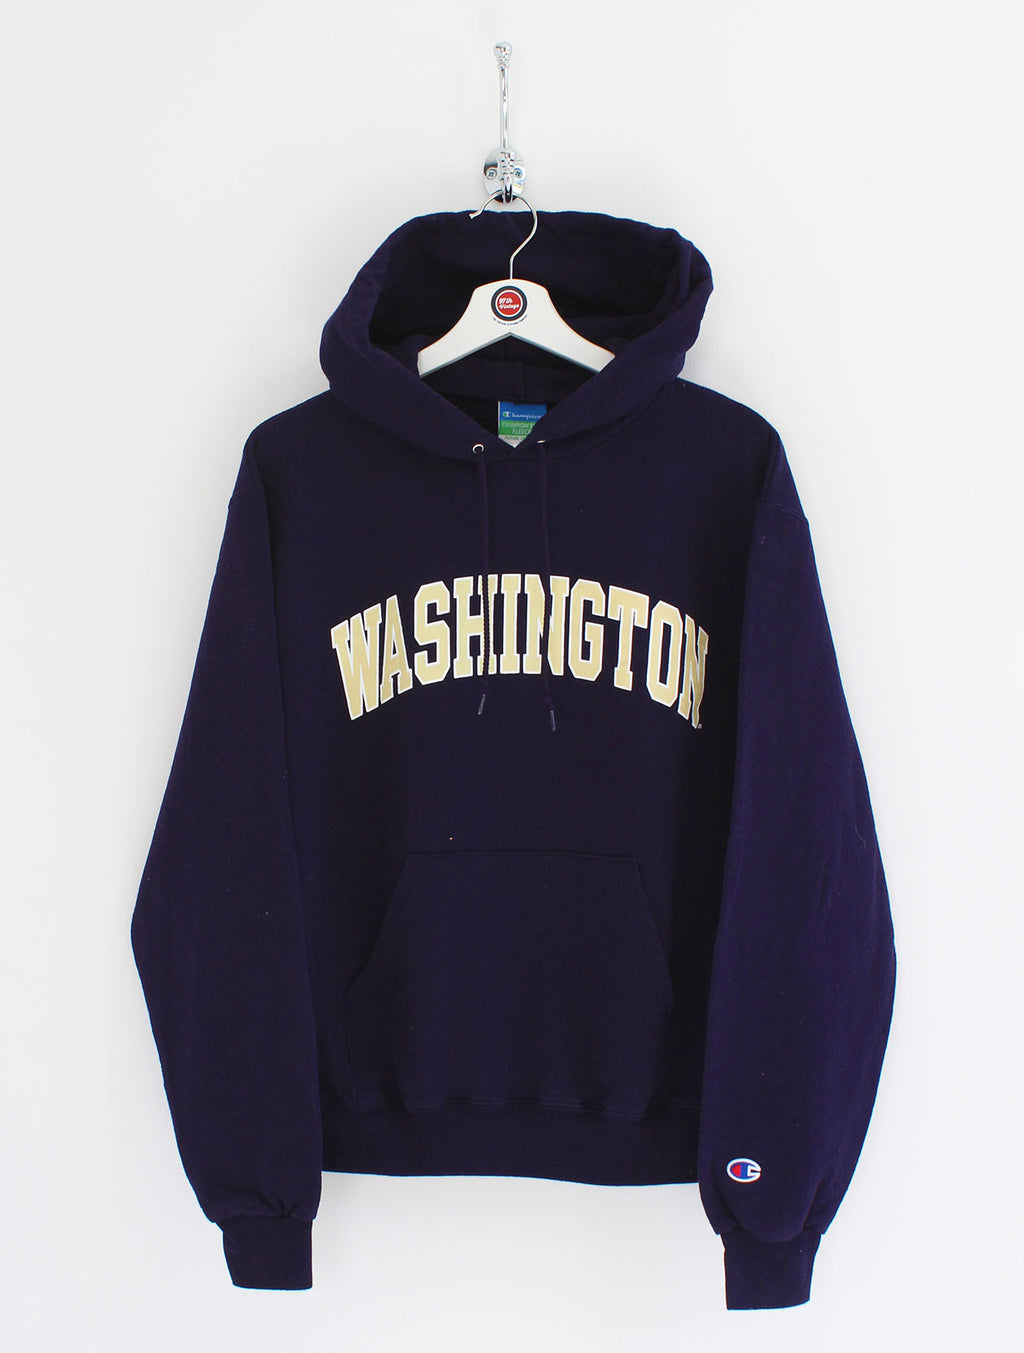 Champion Washington Hoodie (XS)